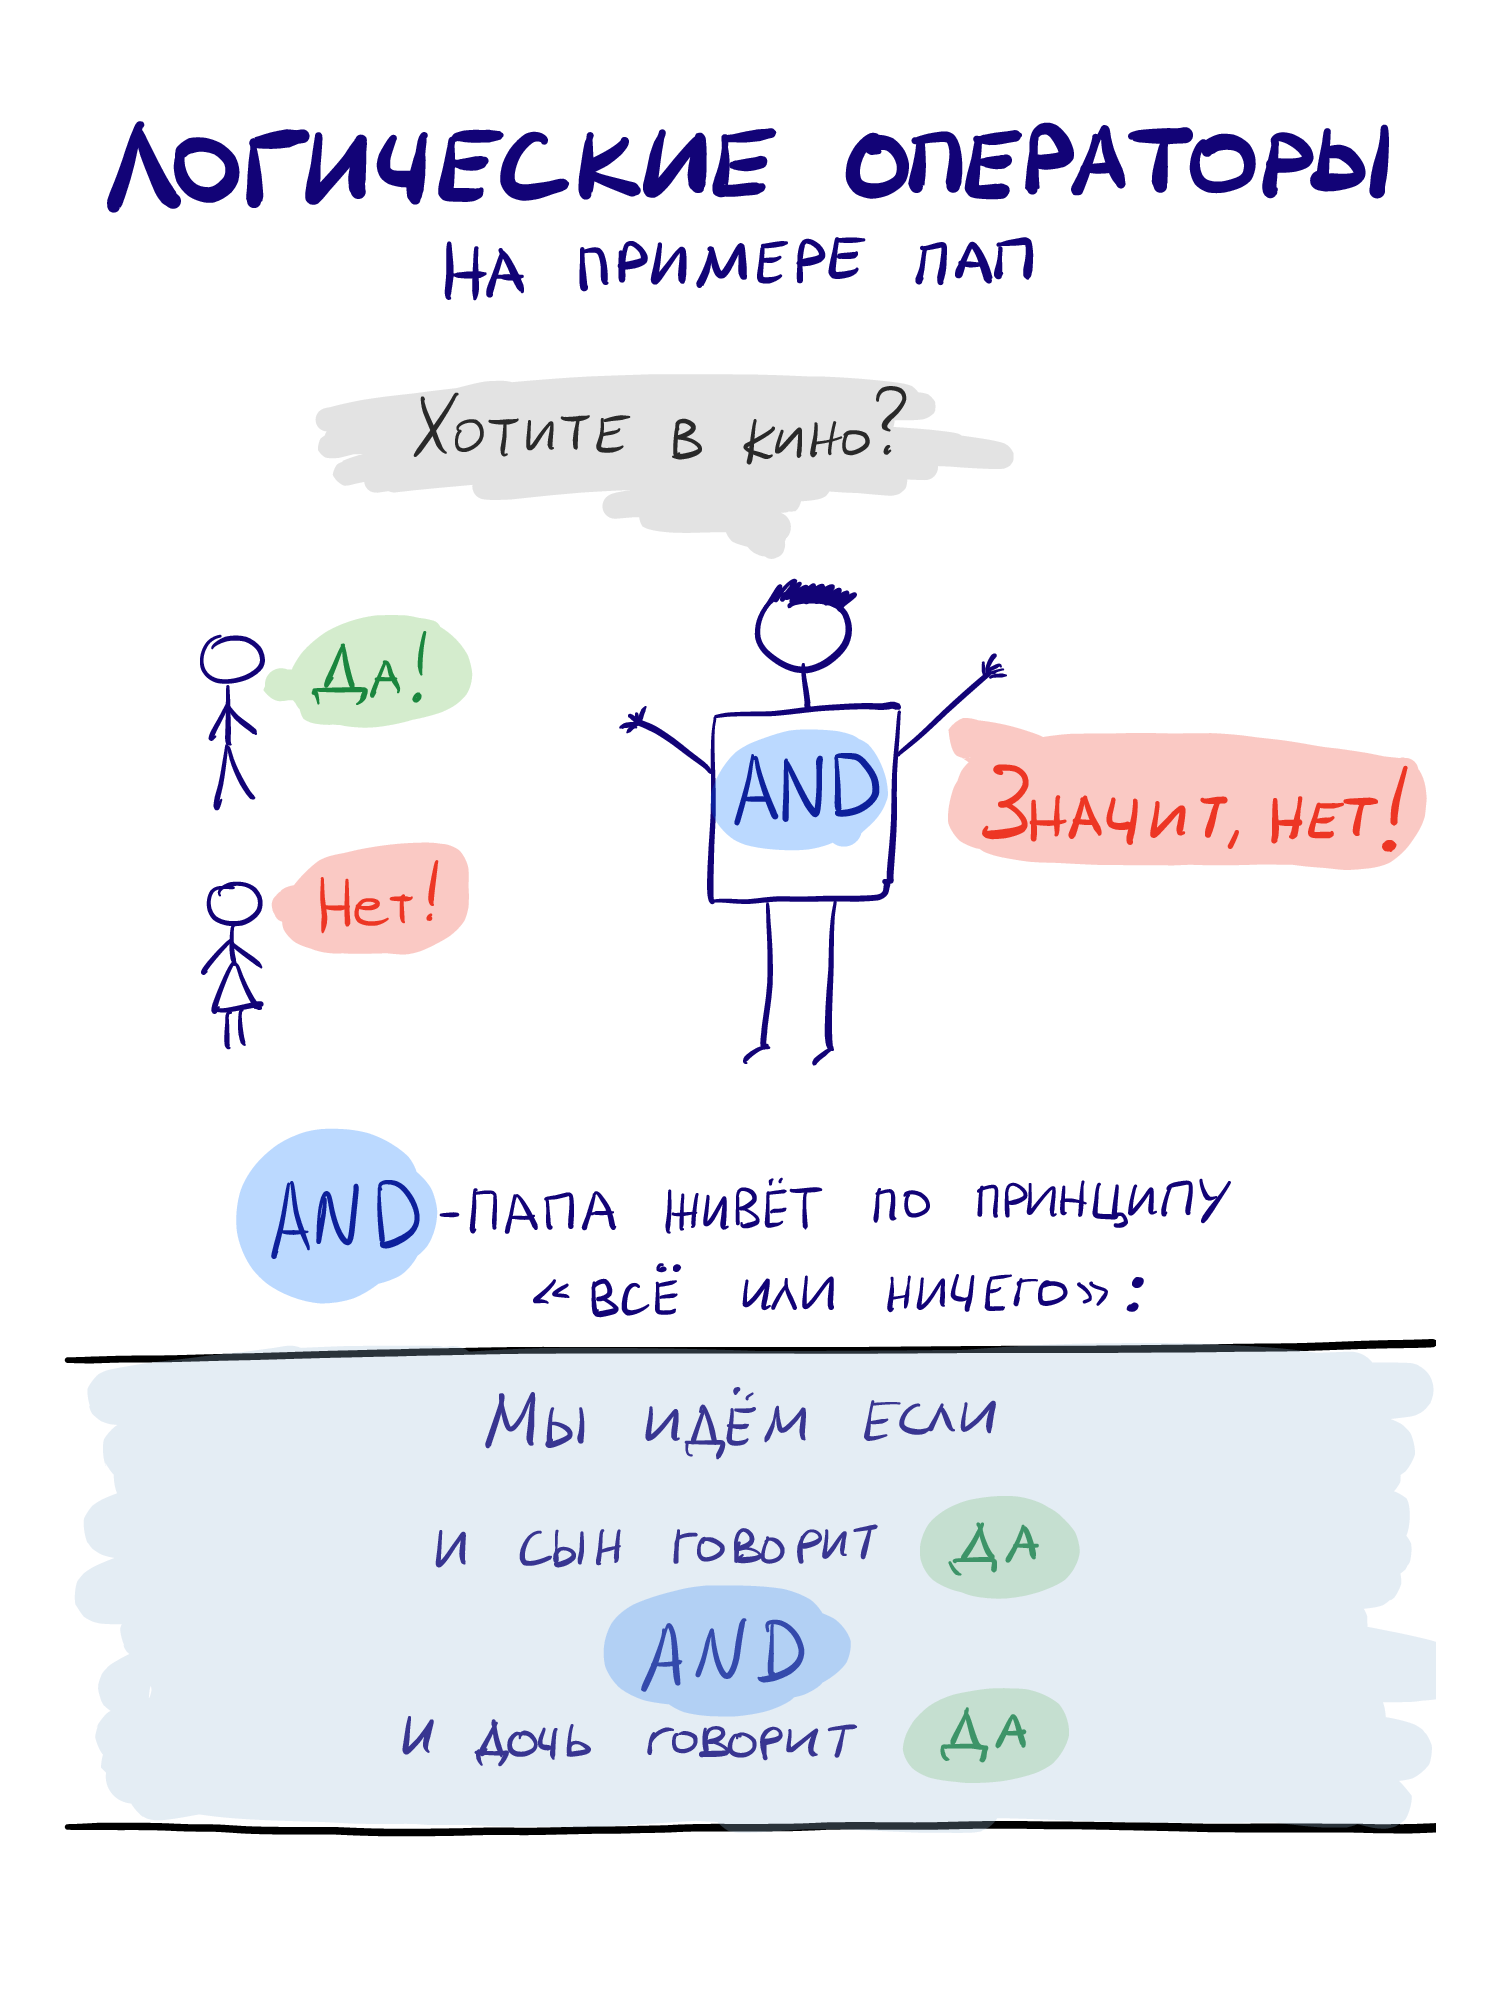 logical operators AND explained with dads